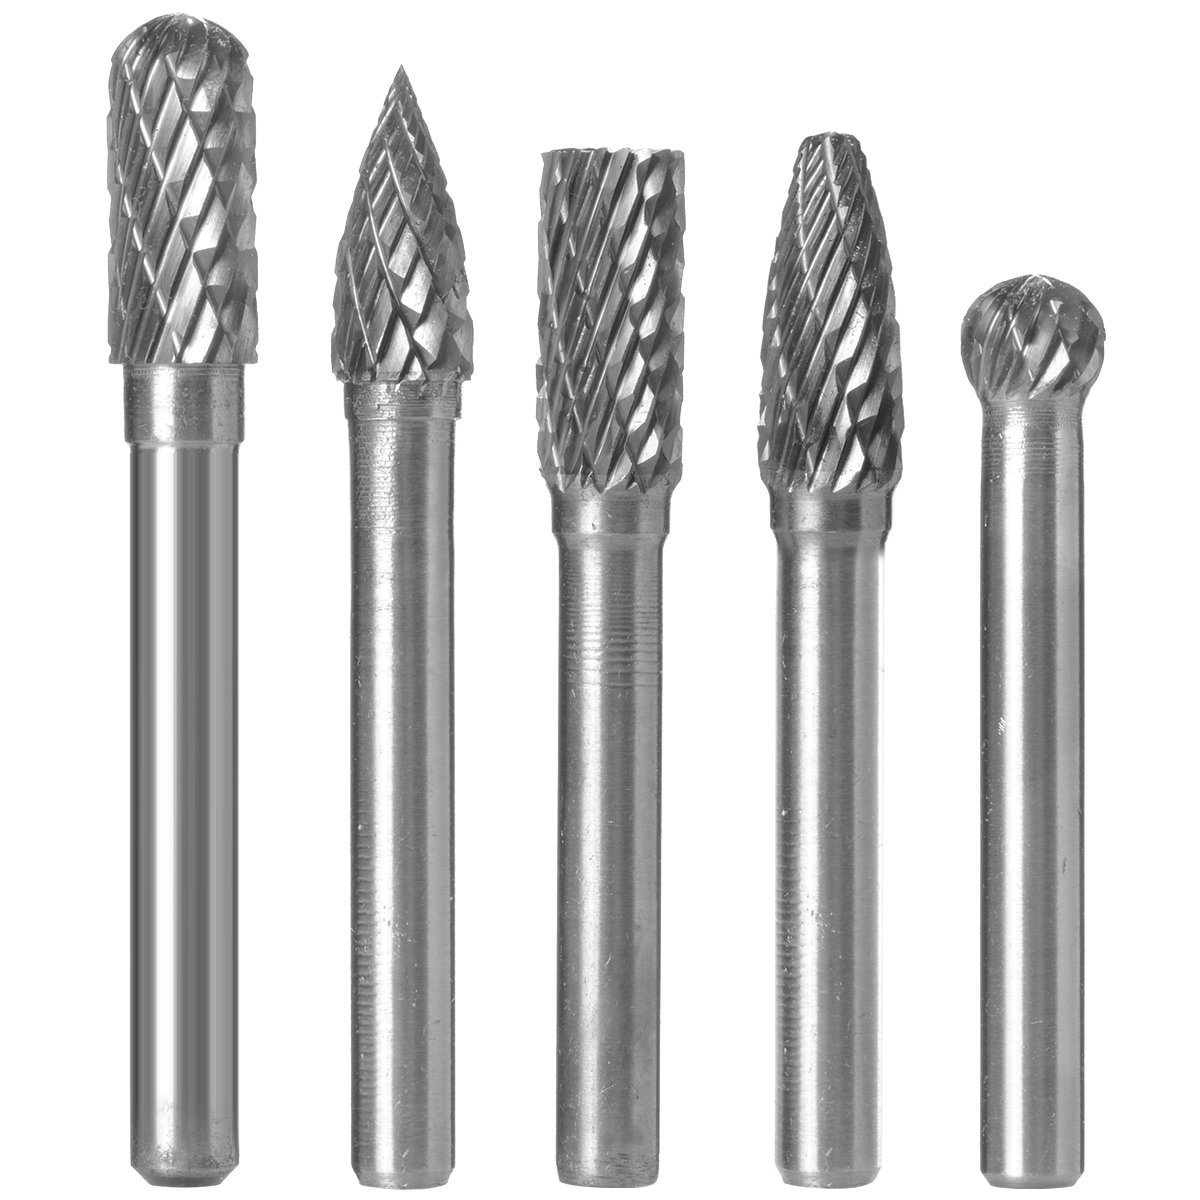 8mm Head Tungsten Carbide Point Burr Die Grinder Drill Bit Abrasive Tool New